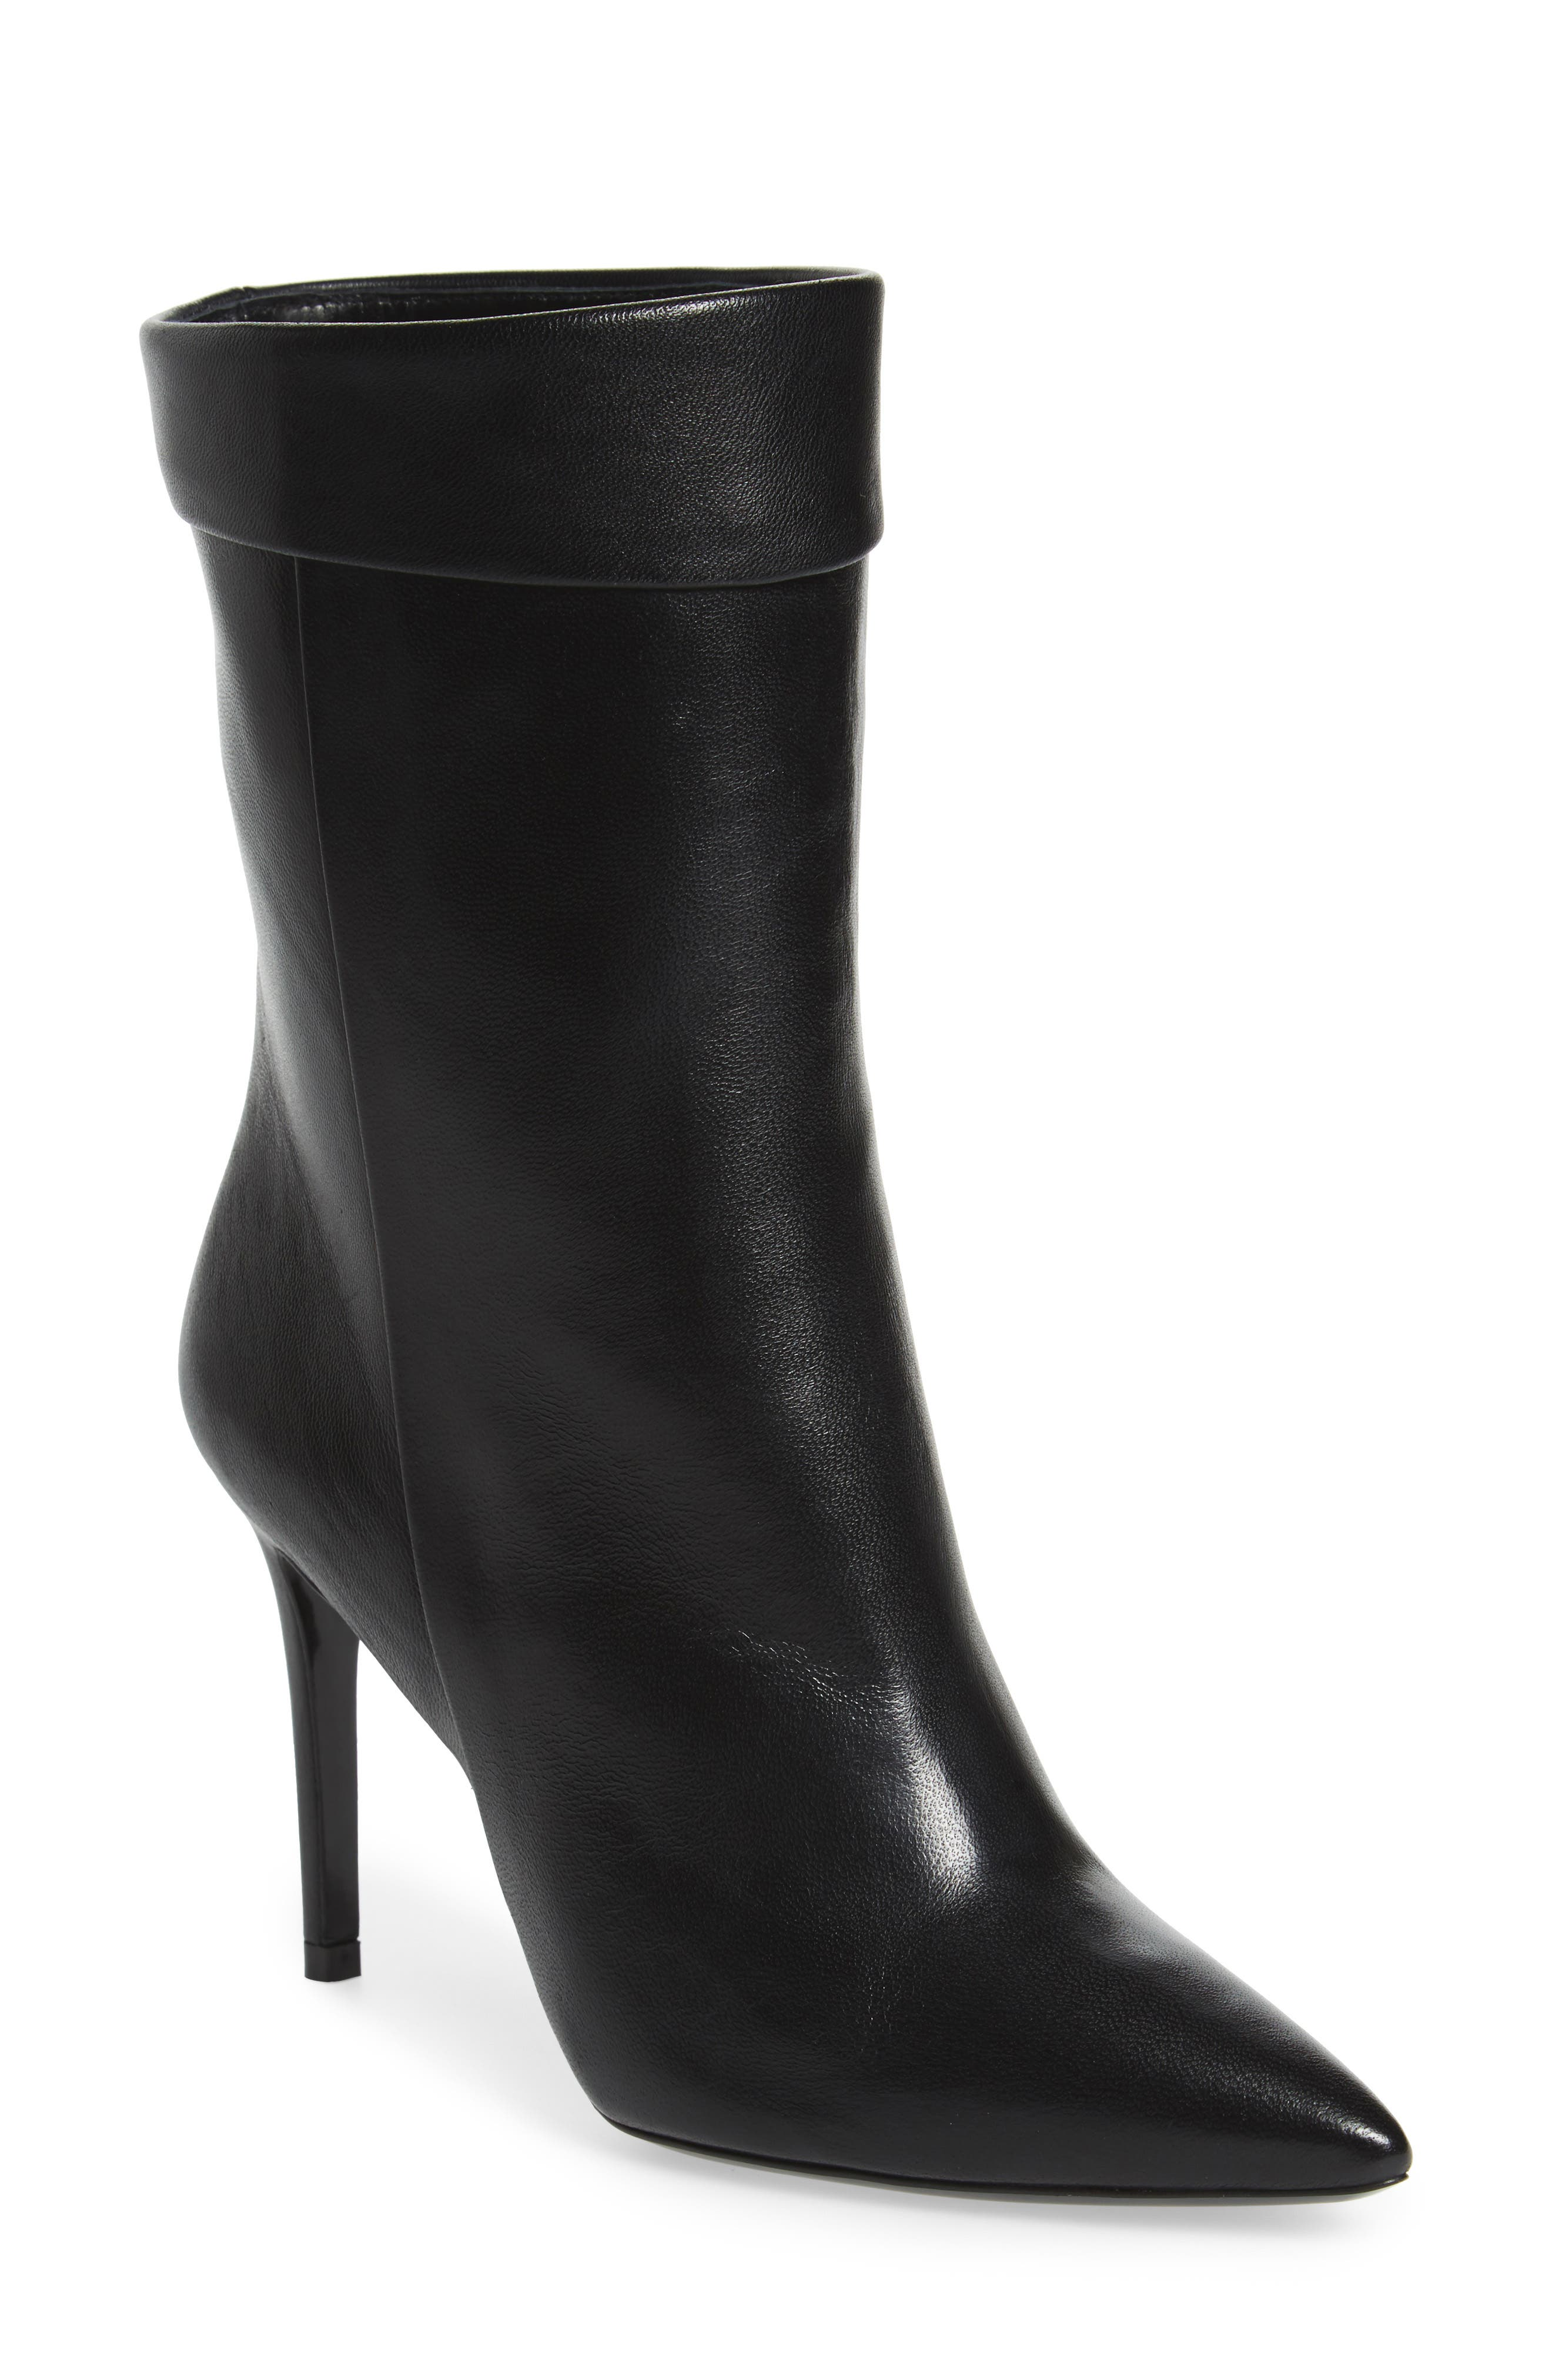 Sylvie Cuffed Pointy Toe Bootie,                             Main thumbnail 1, color,                             Black Leather